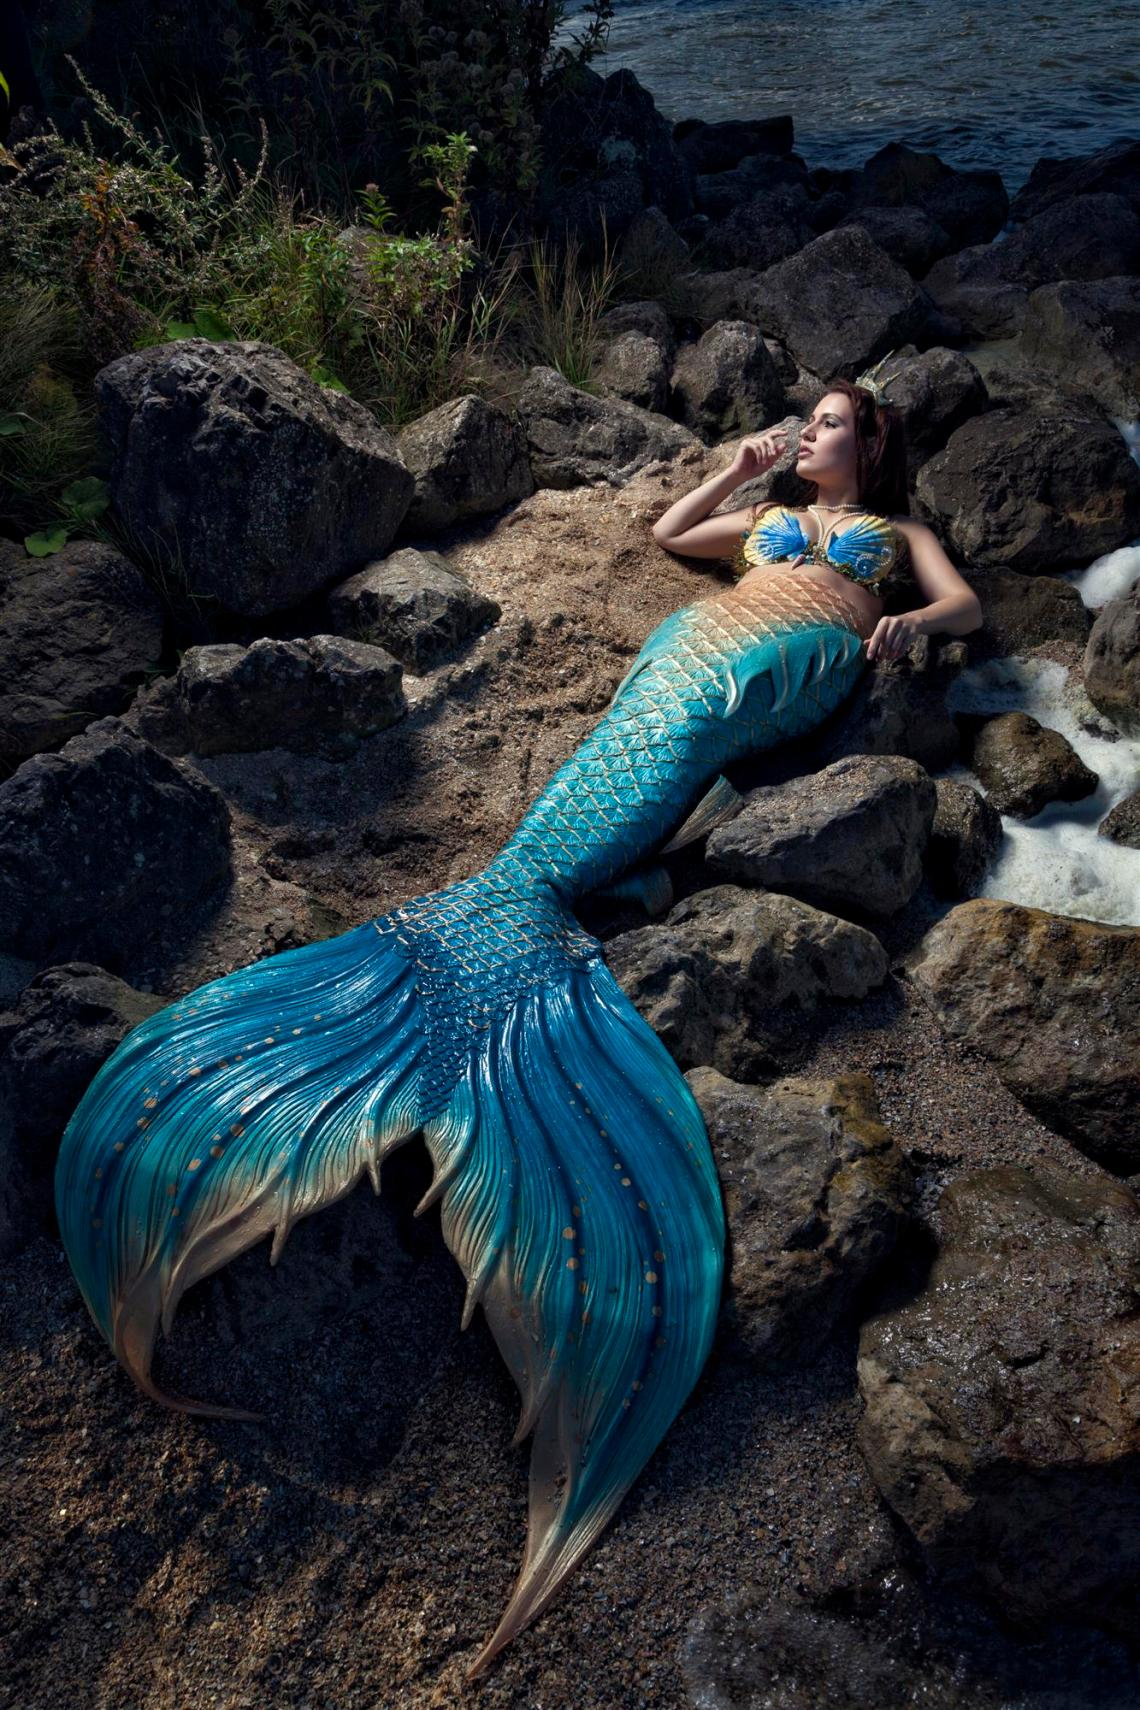 mermaid-photoshoot-wendy-appelman-photography-2-custom